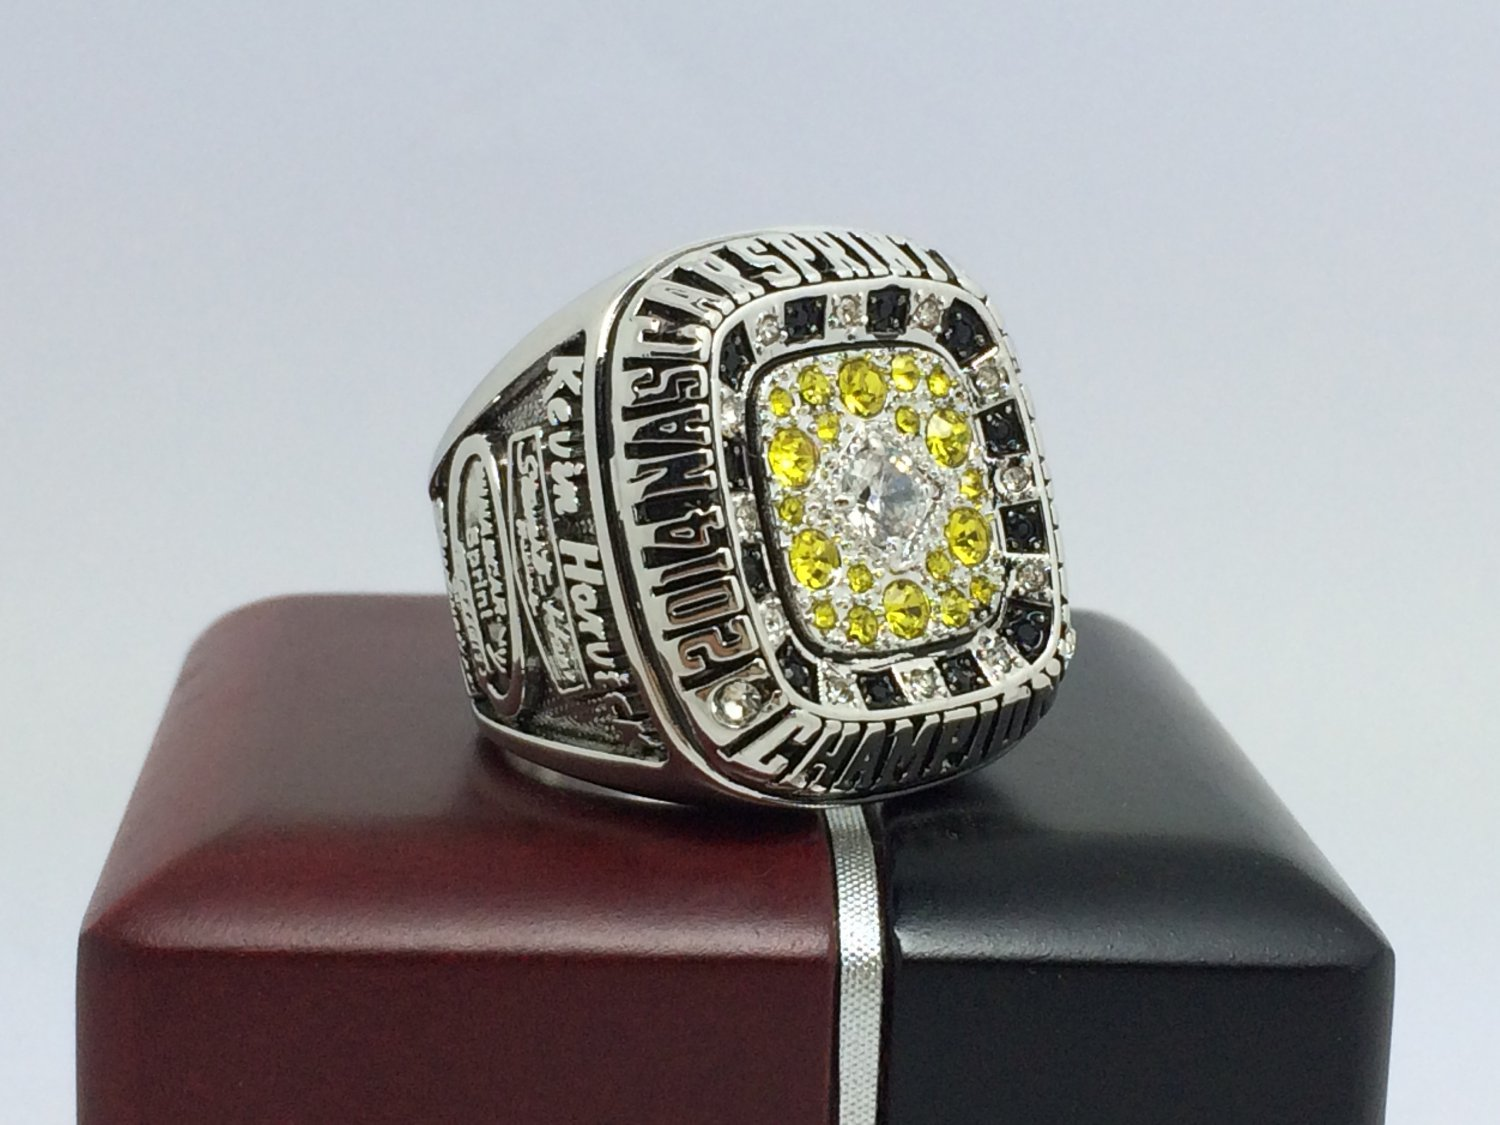 2014 Stewart-Haas Racing Sprint Cup Championship Ring for Kevin Harvick 8-14 size with box